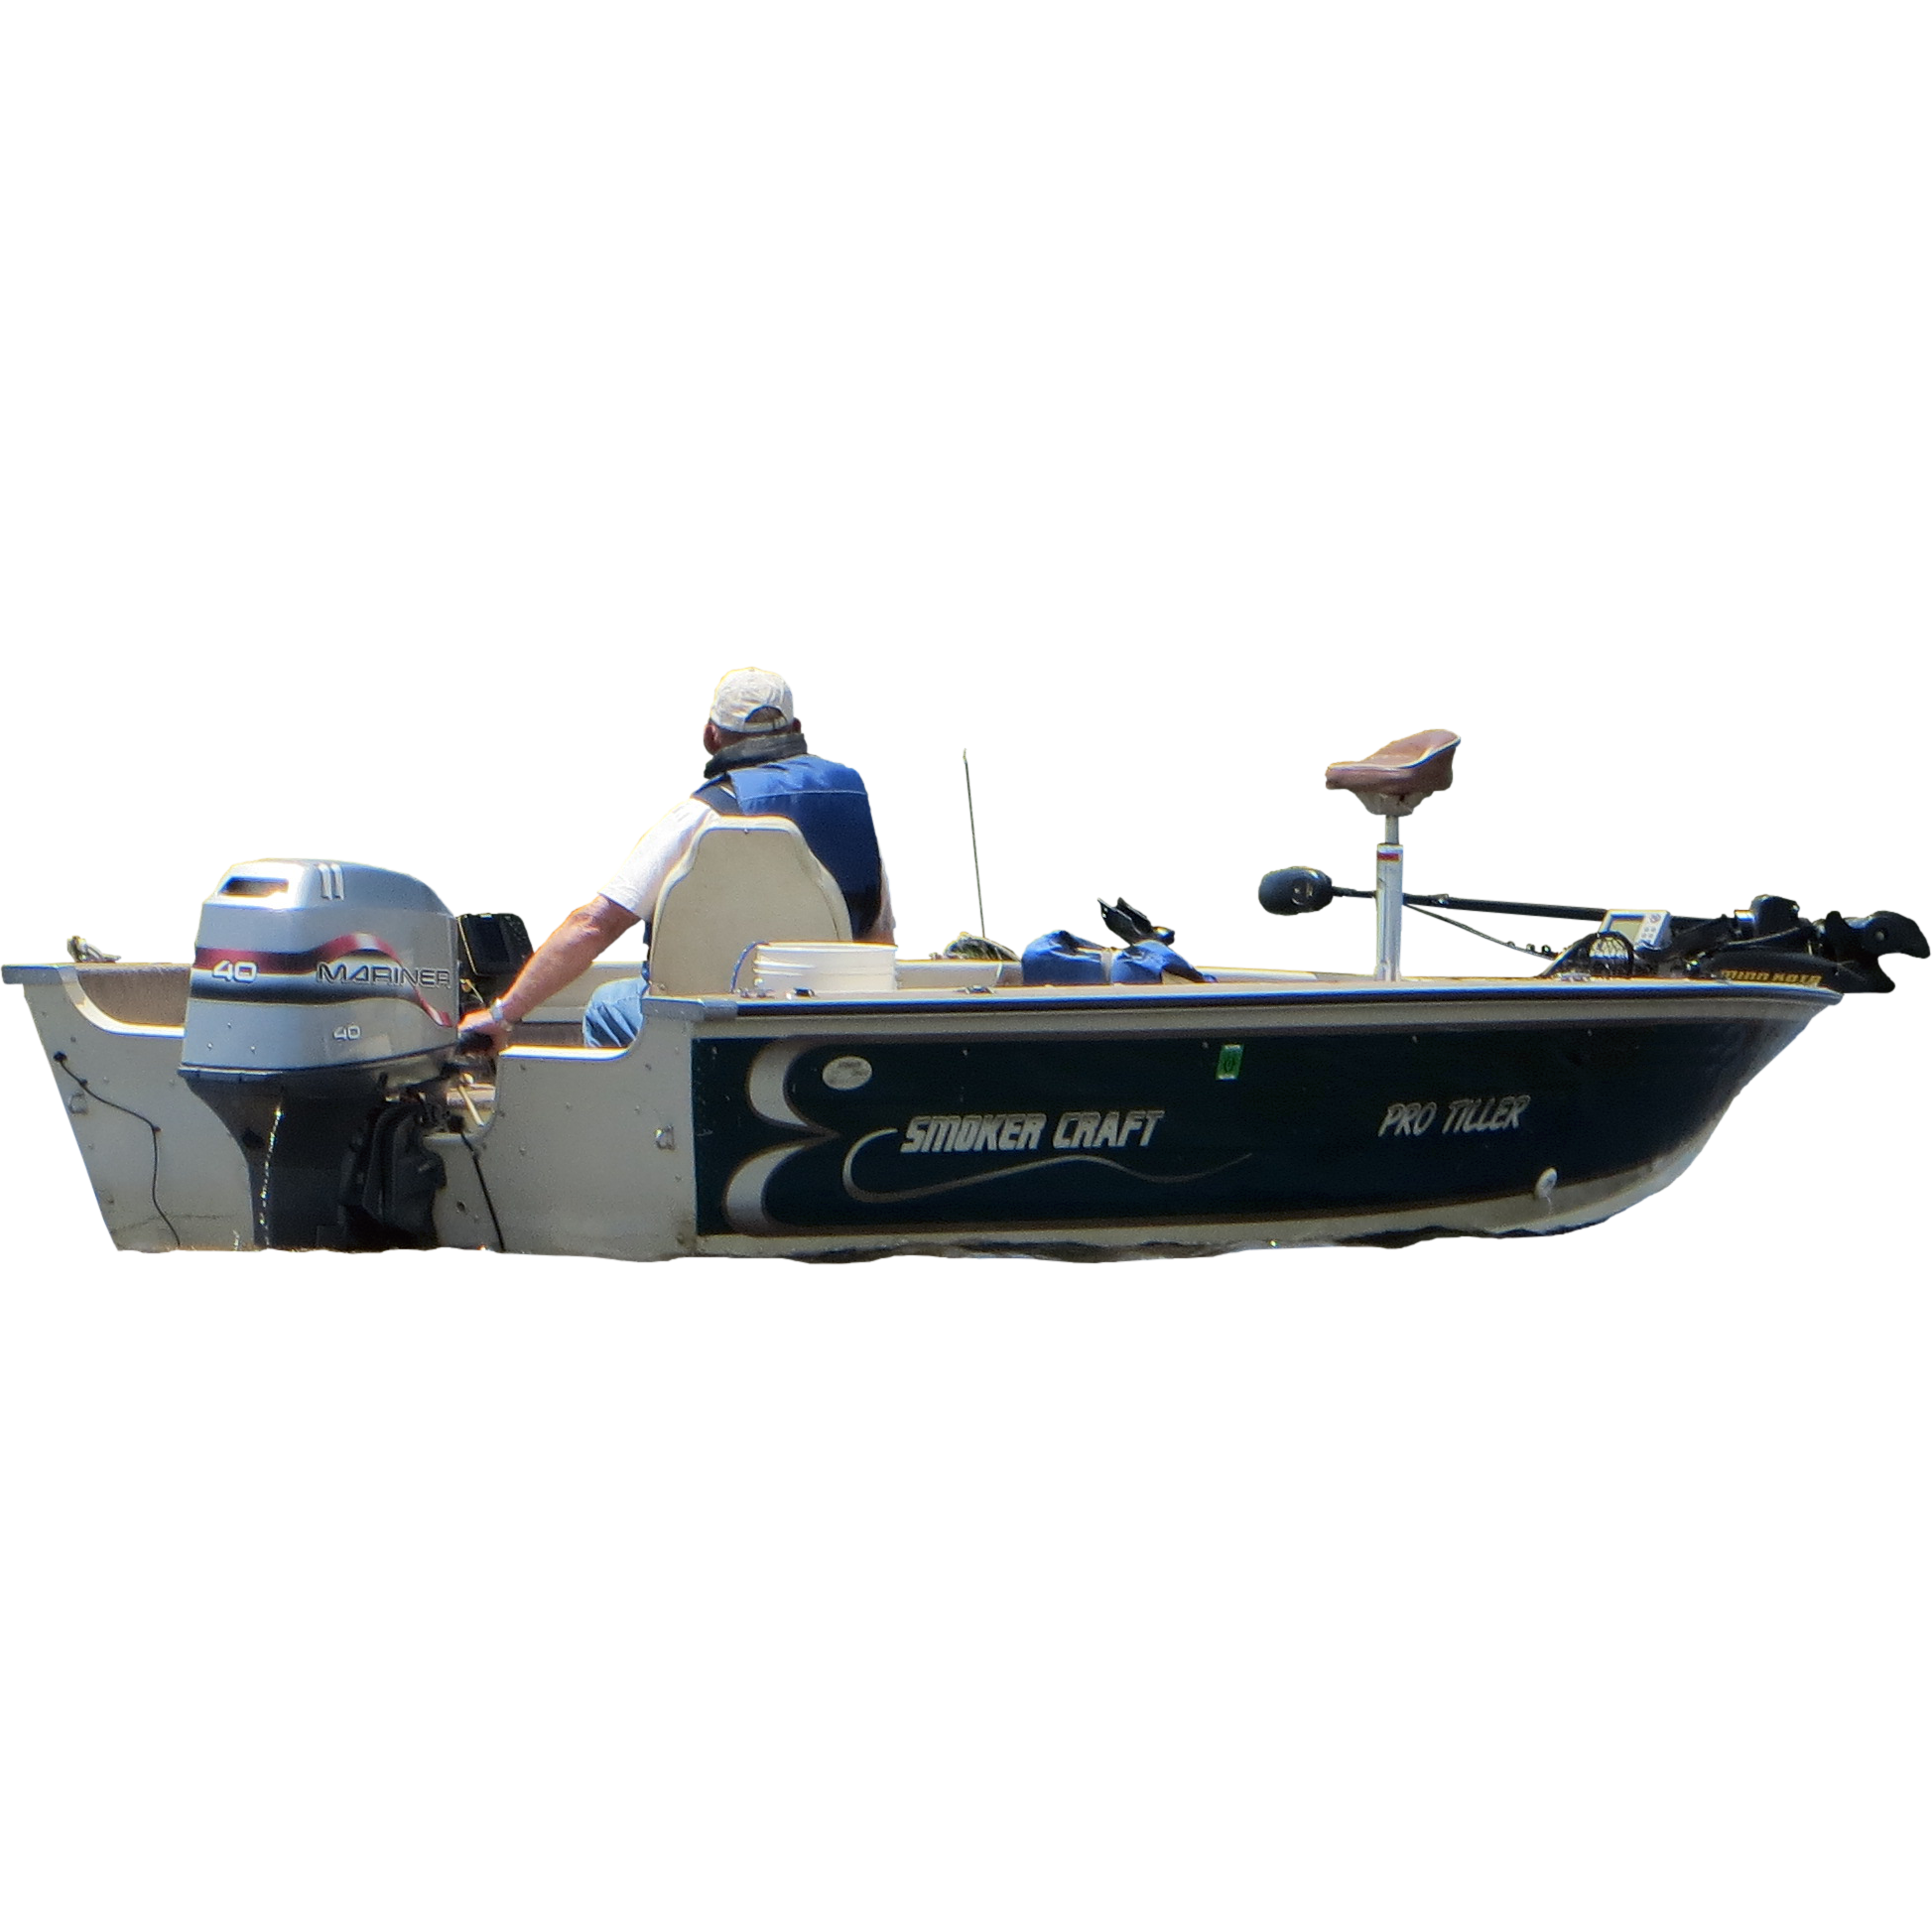 Fishing boat png. Photo of men on